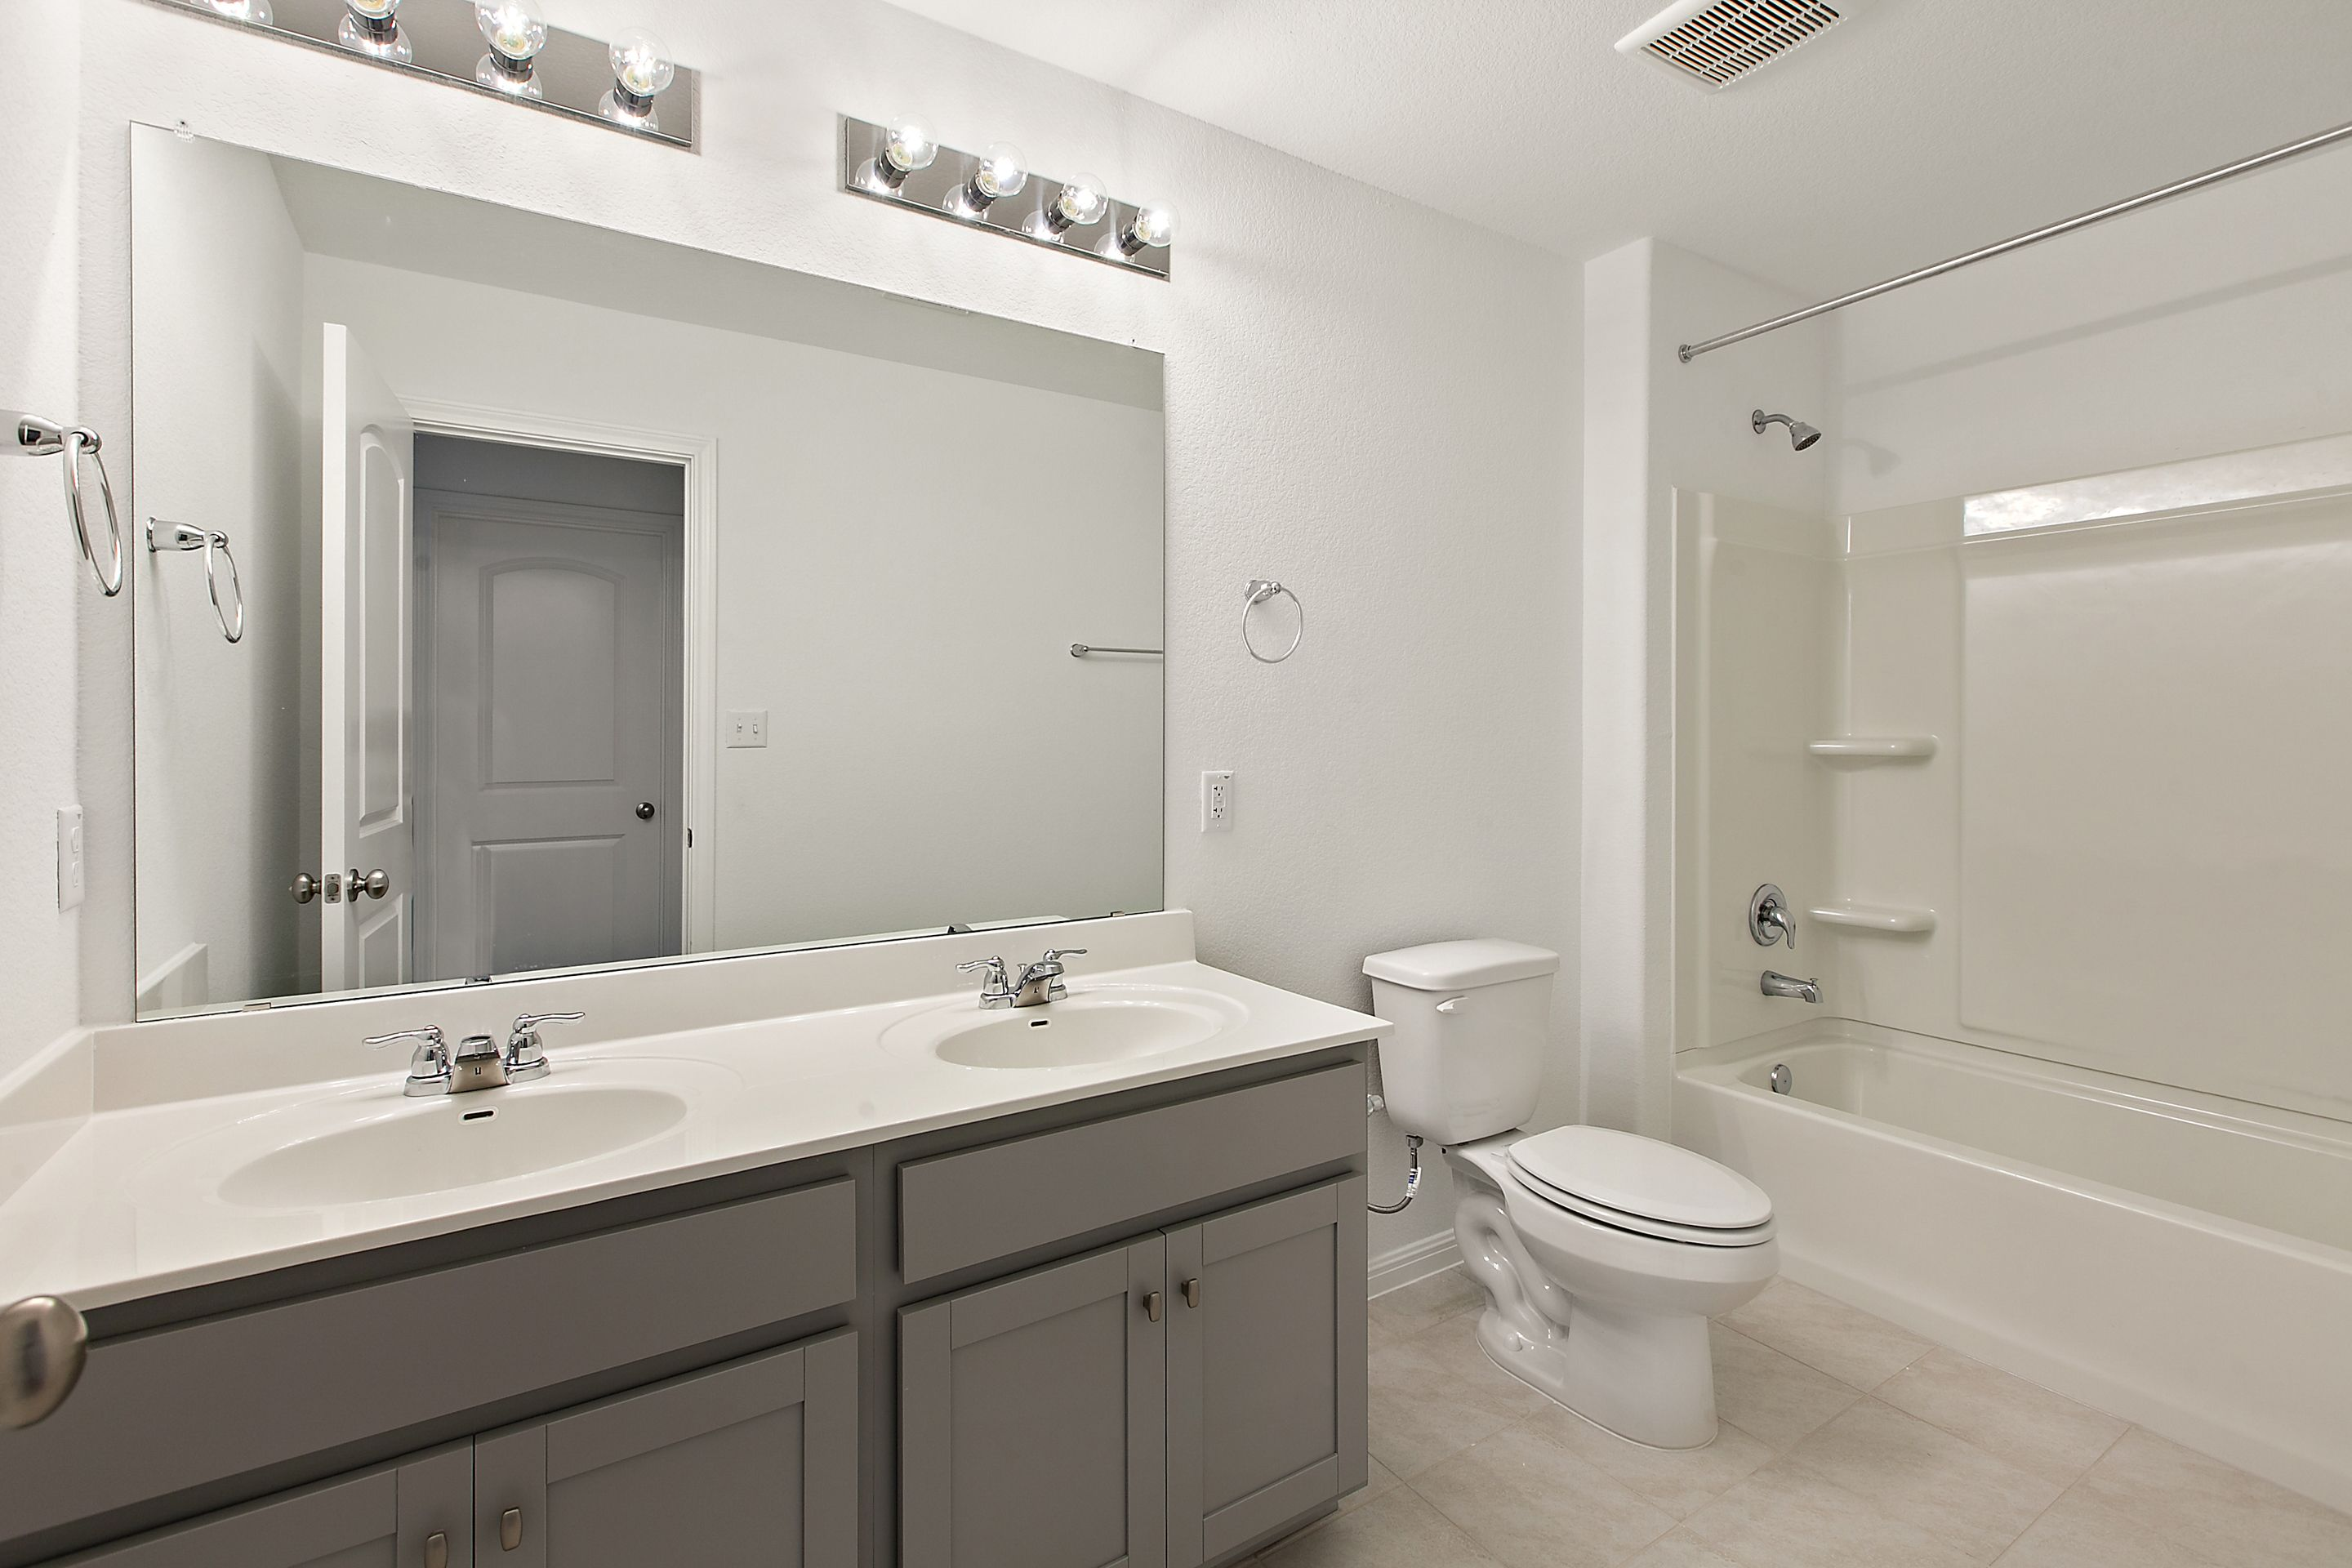 Bathroom featured in the Sheffield By Ashton Woods in Austin, TX